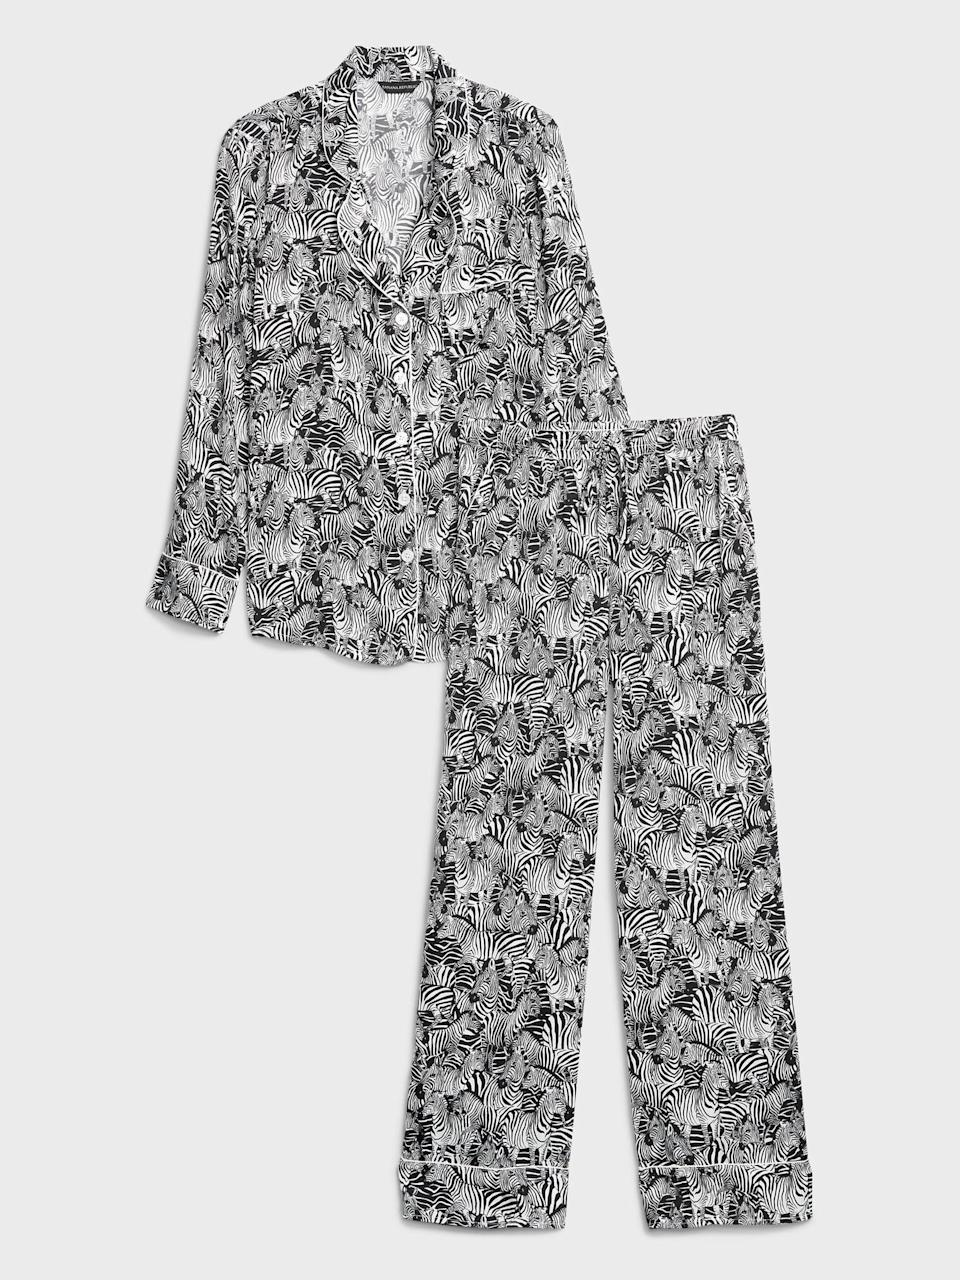 <p>It's important that we look cute while caring for ourselves. So of course, with a zebra mask and scrunchie, this<span>Banana Republic Satin Pajama Set</span> ($87) is the perfect compliment! The satin makes it feel extra luxe lounging around your house.</p>